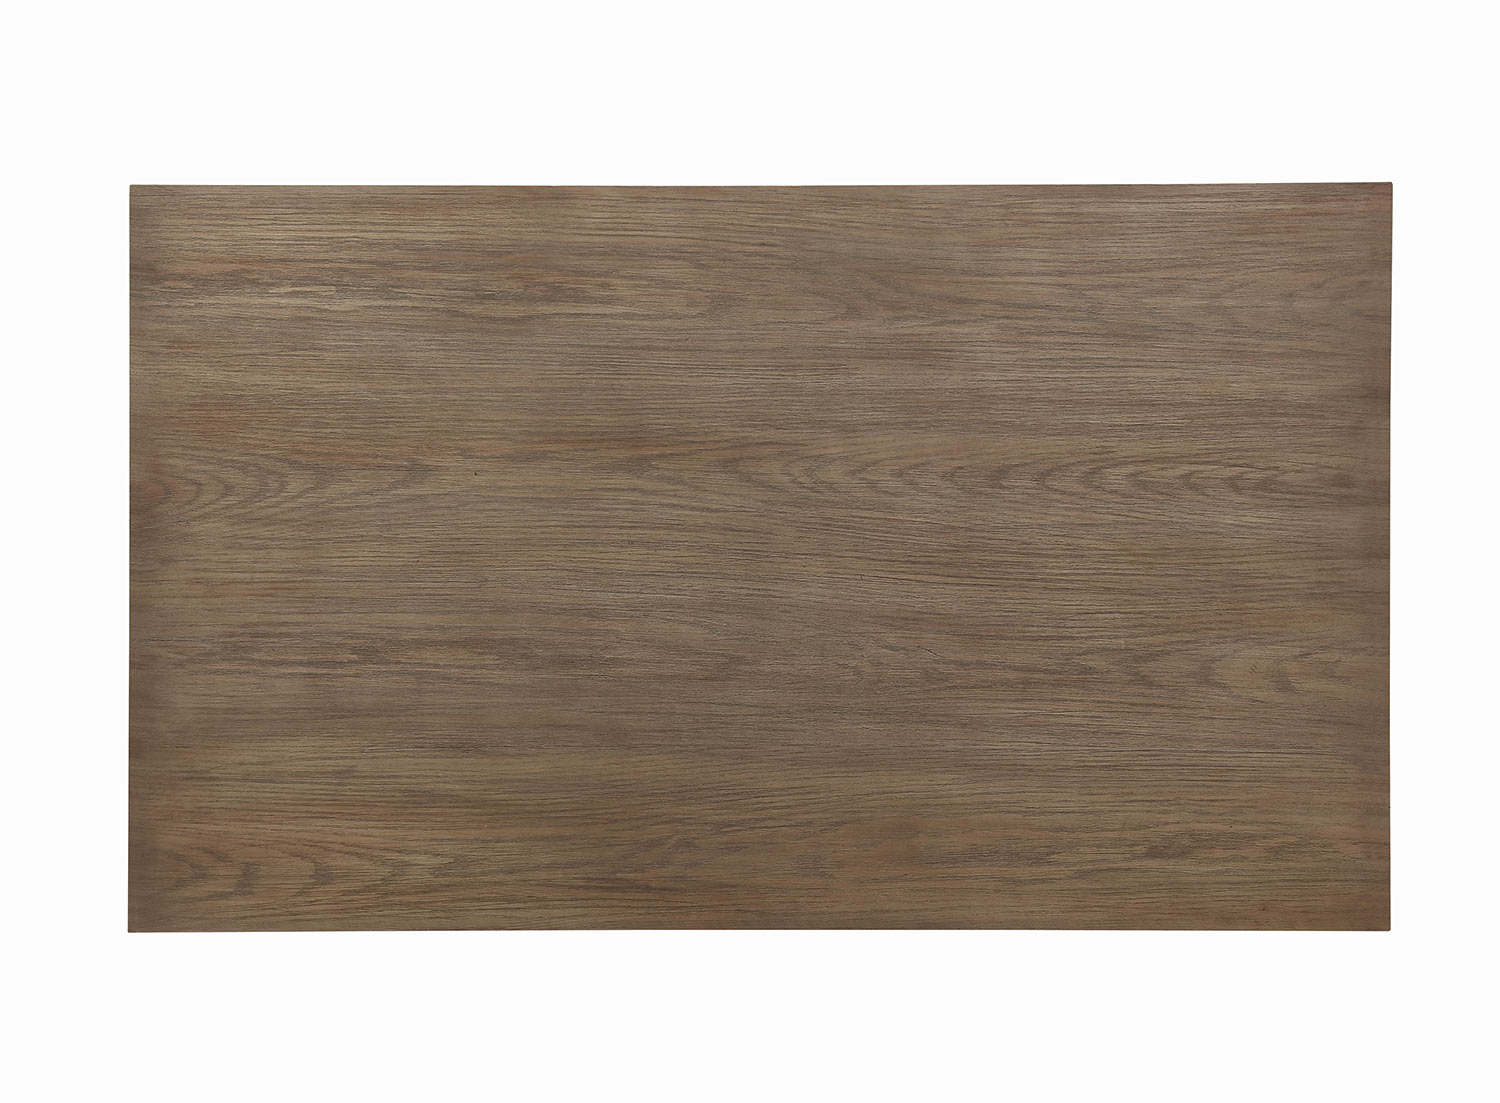 Homelegance Armhurst Dining Table - Brown